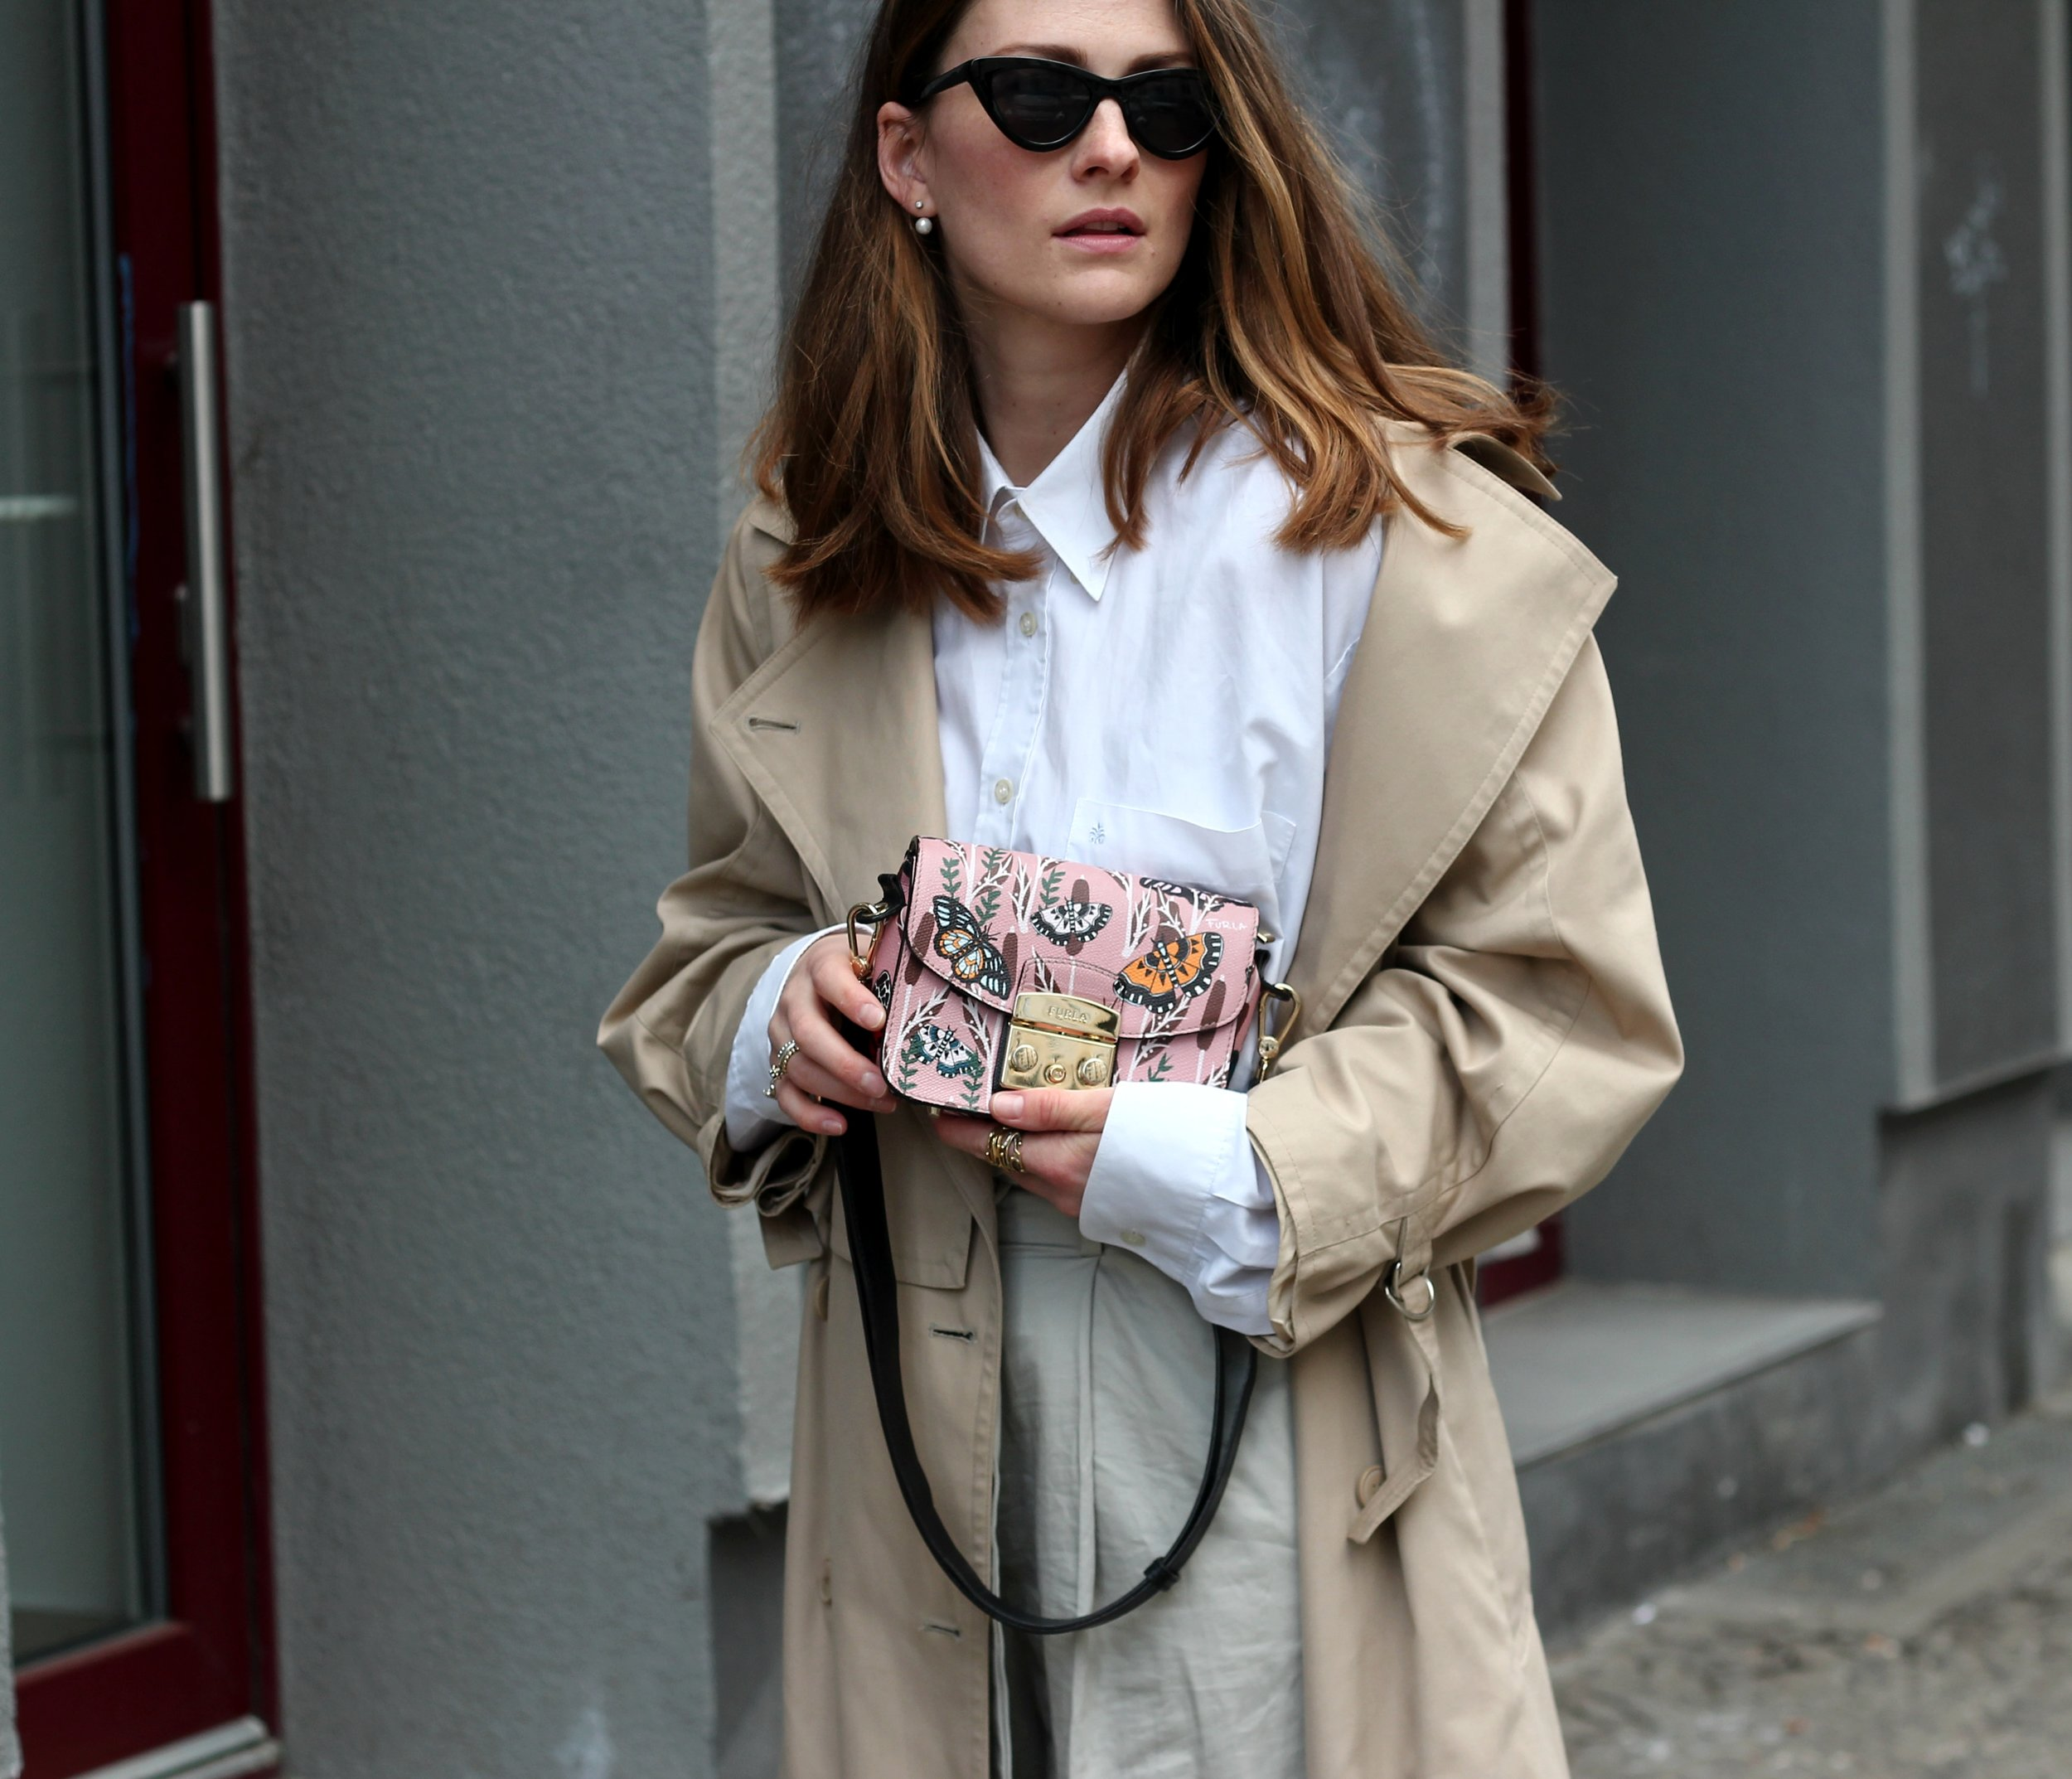 annaporter-trench-look-portrait